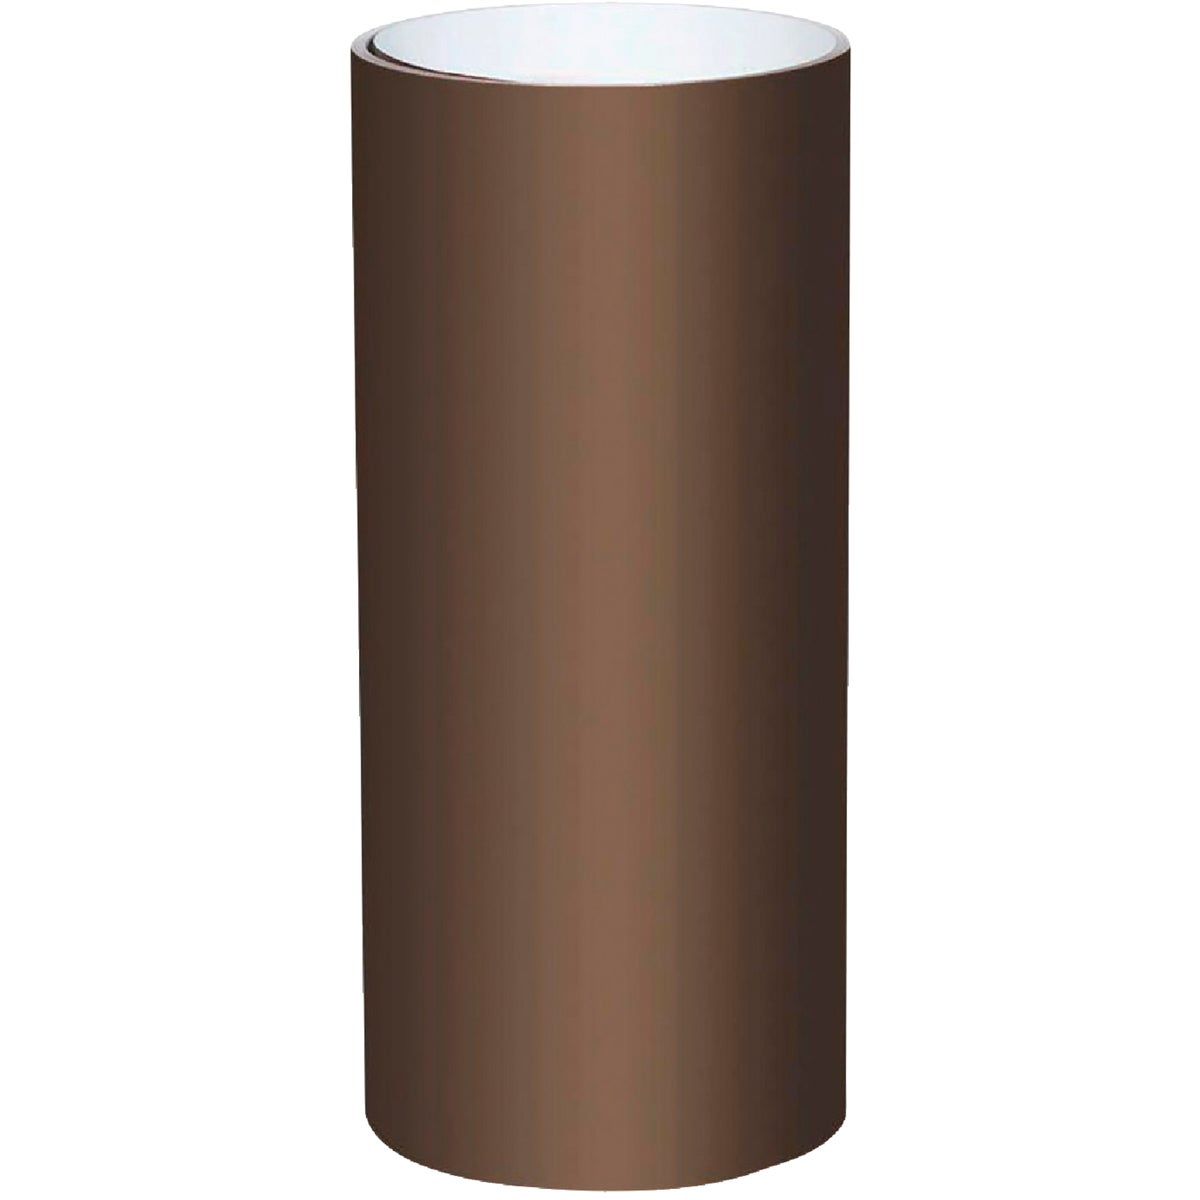 24X50 BROWN TRIM COIL - 69124 by Amerimax Home Prod